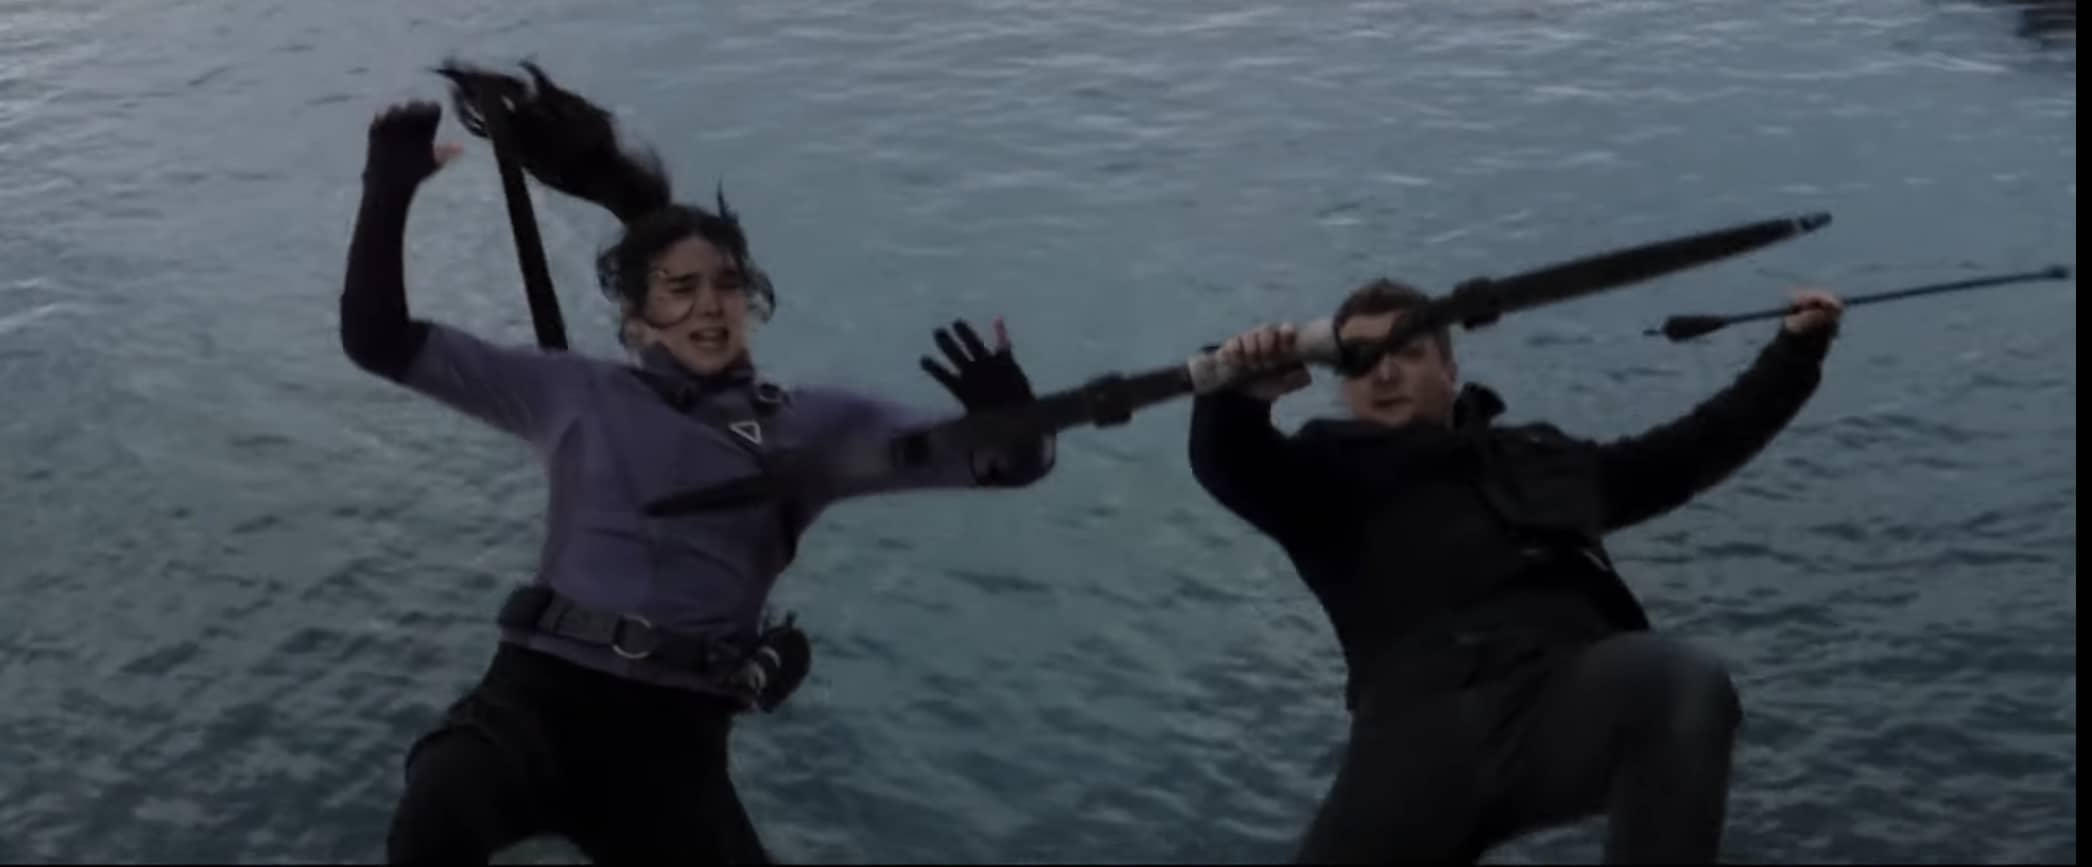 Kate Bishop and Clint Barton falling towards a body of water while getting ready to show an arrow up at the sky.